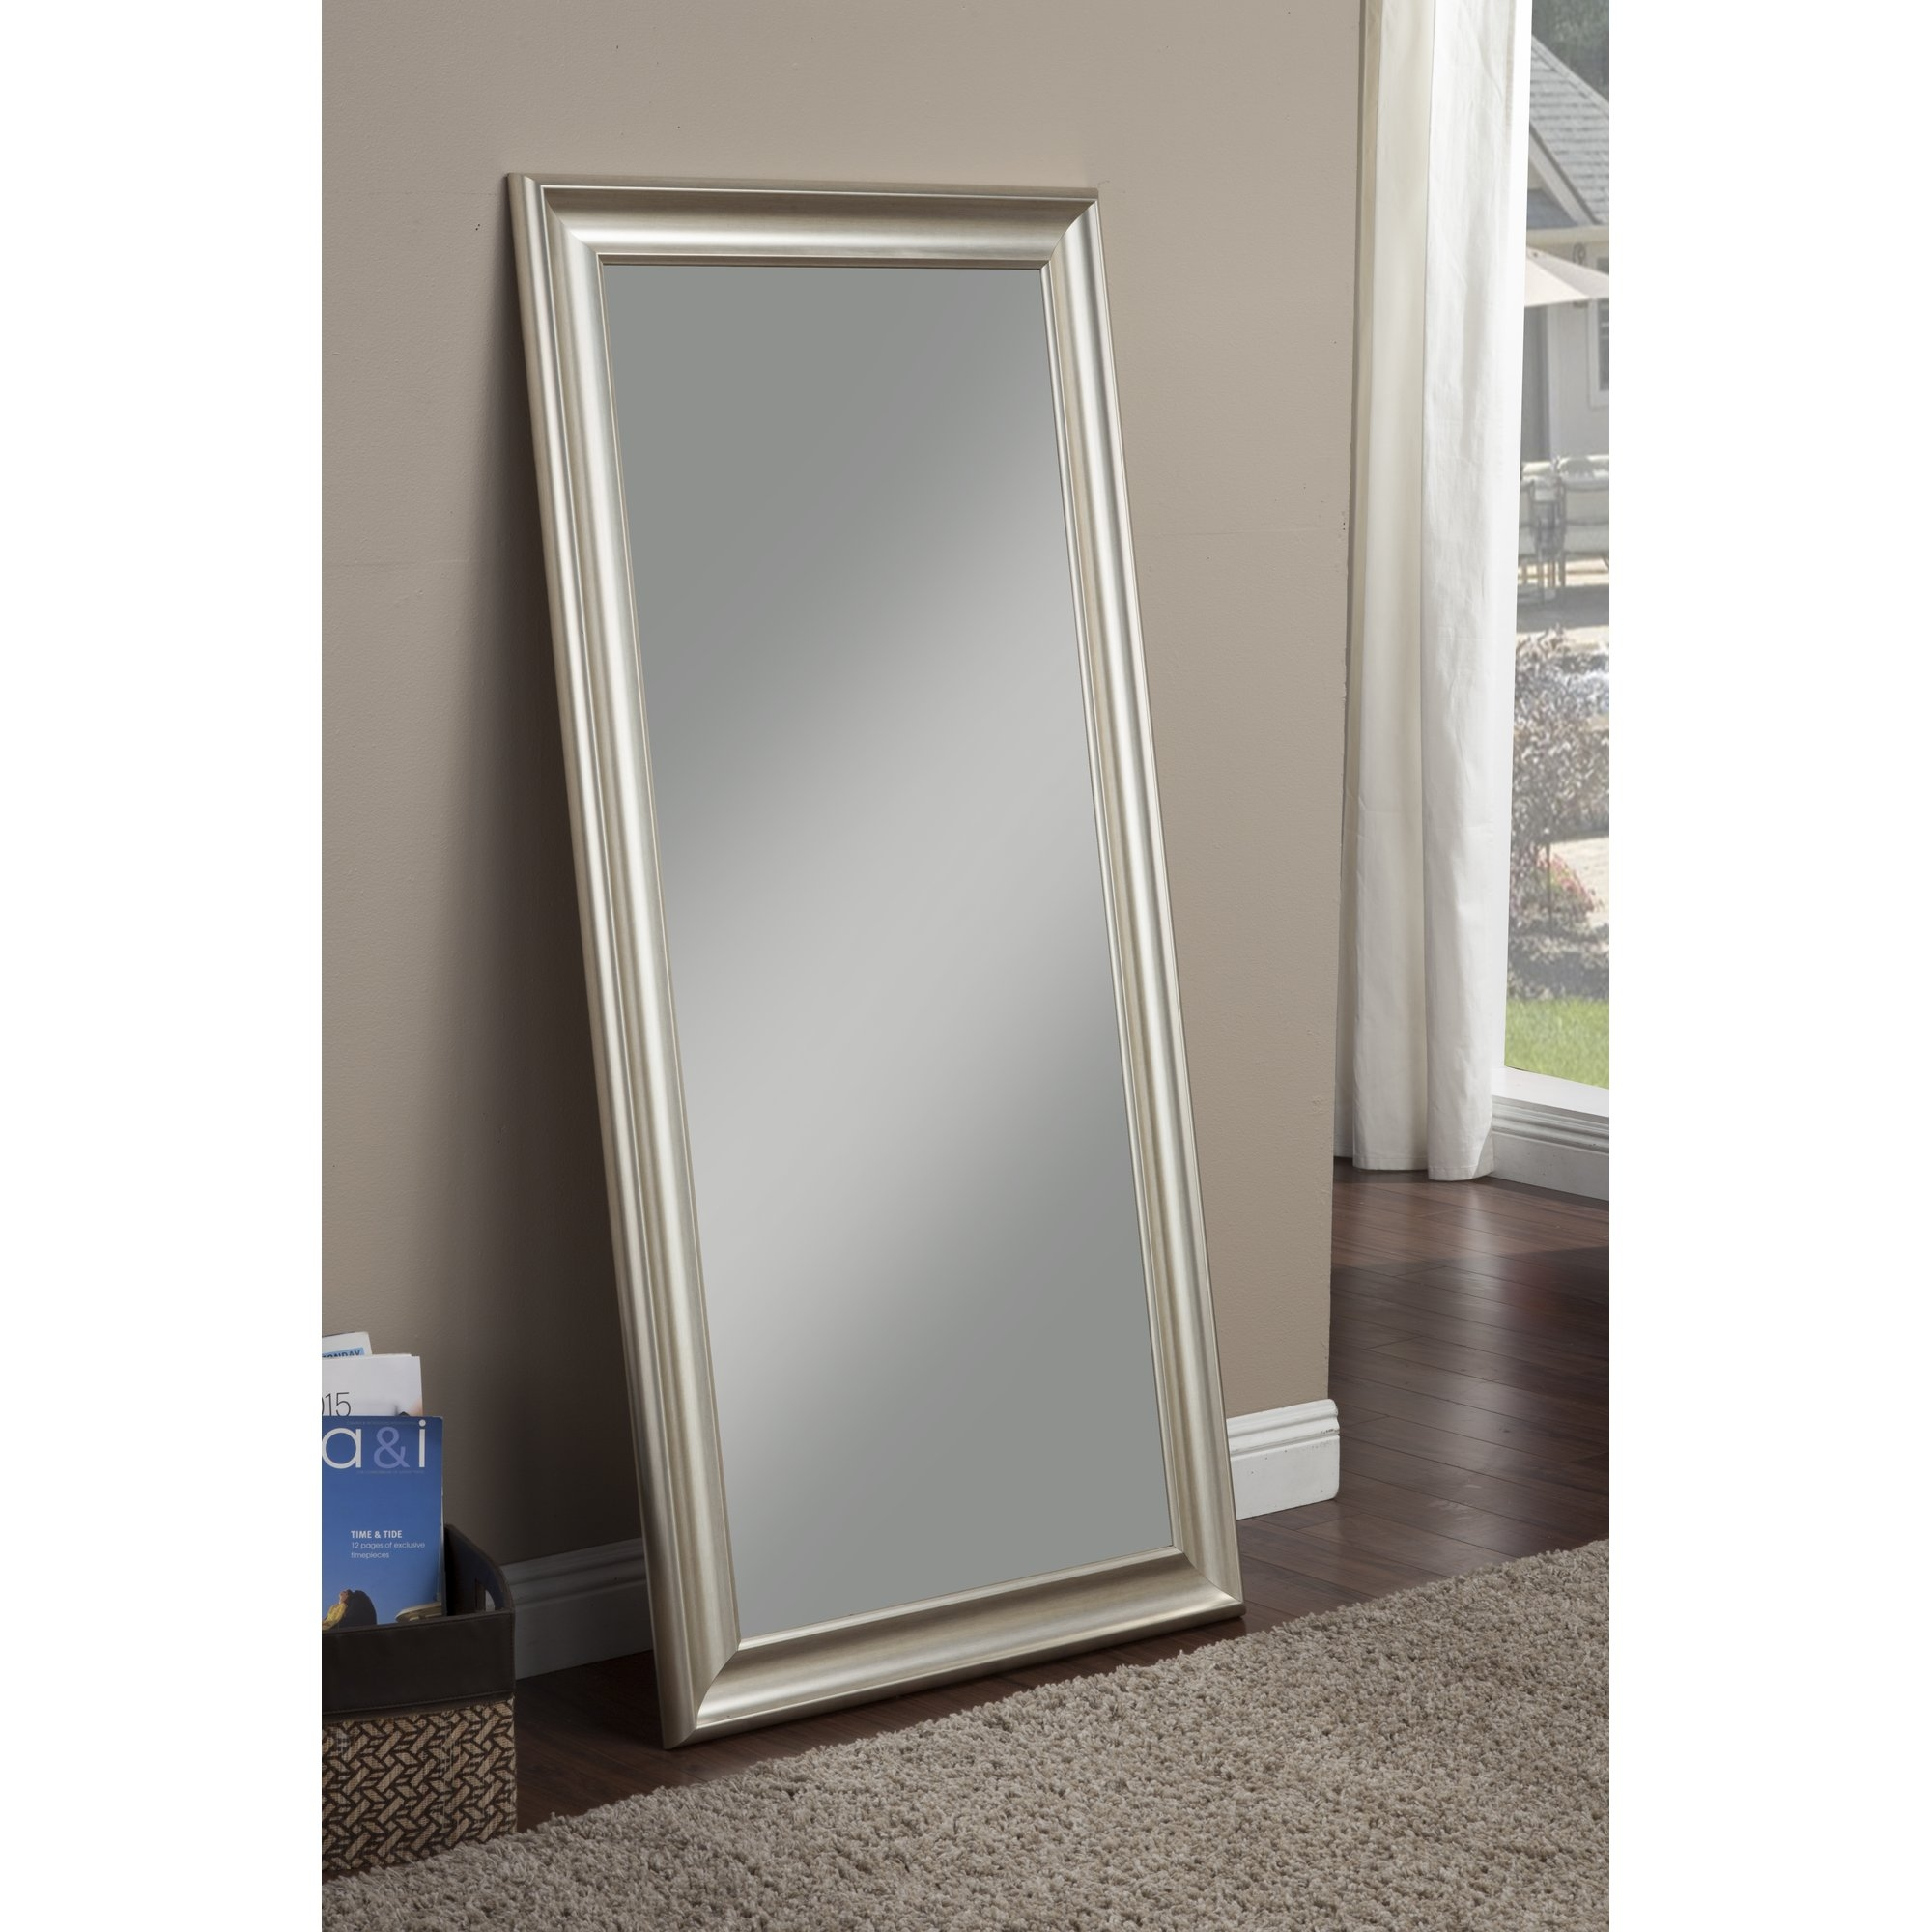 Full Length Mirrors Youll Love Wayfair With Regard To Full Length French Mirror (View 14 of 15)